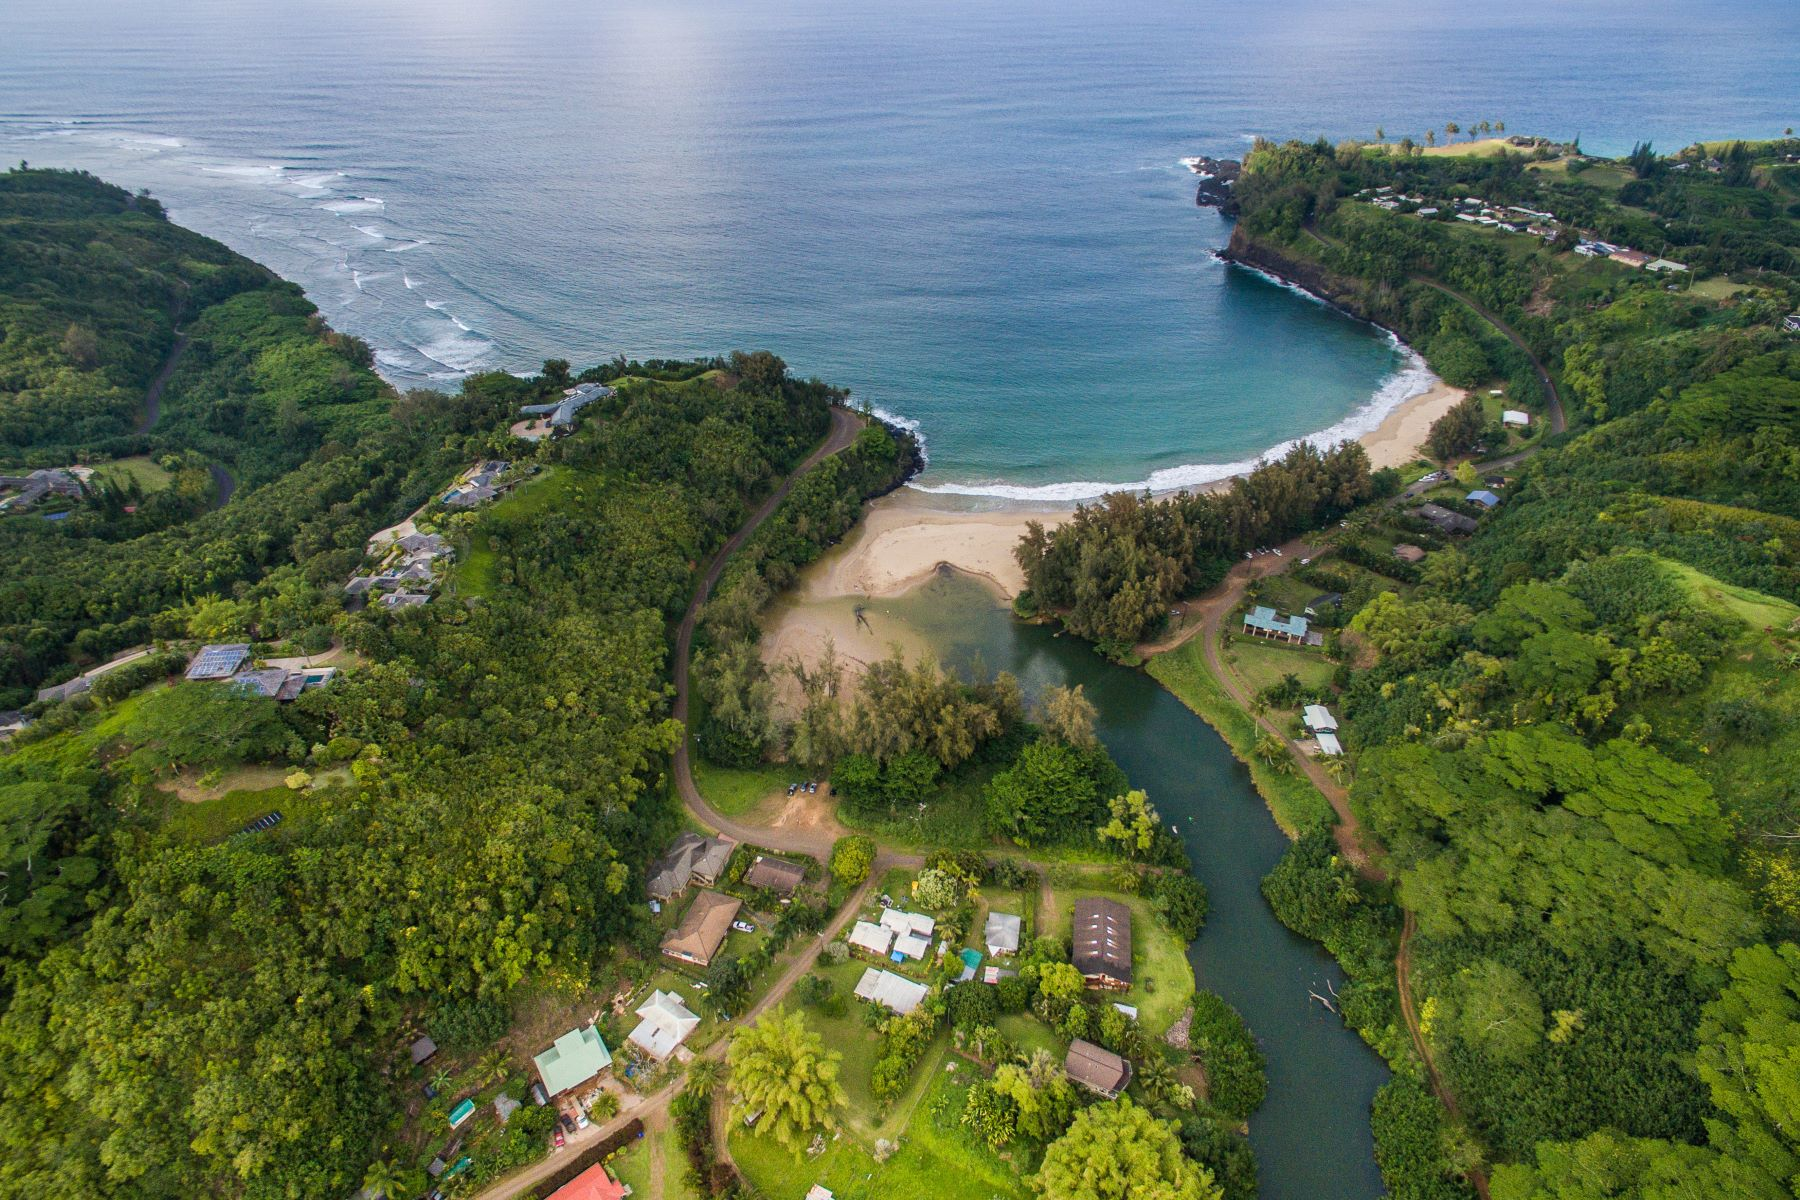 Single Family Home for Sale at Beautiful Prime Kalihiwai Valley Property Just Steps to River and Bay 3167 Kalihiwai Road #B Kilauea, Hawaii 96754 United States